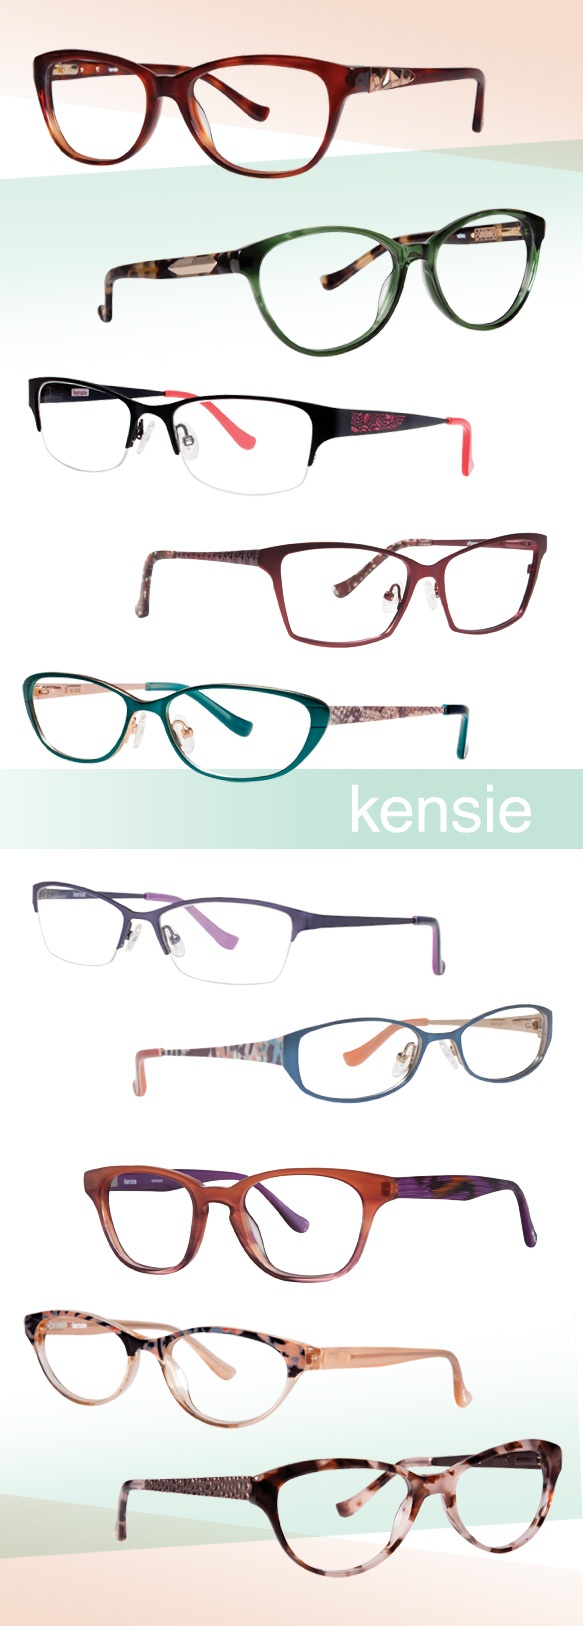 Kensie girls frames are fun and cute and playful. Available now at Grbevski & Associates